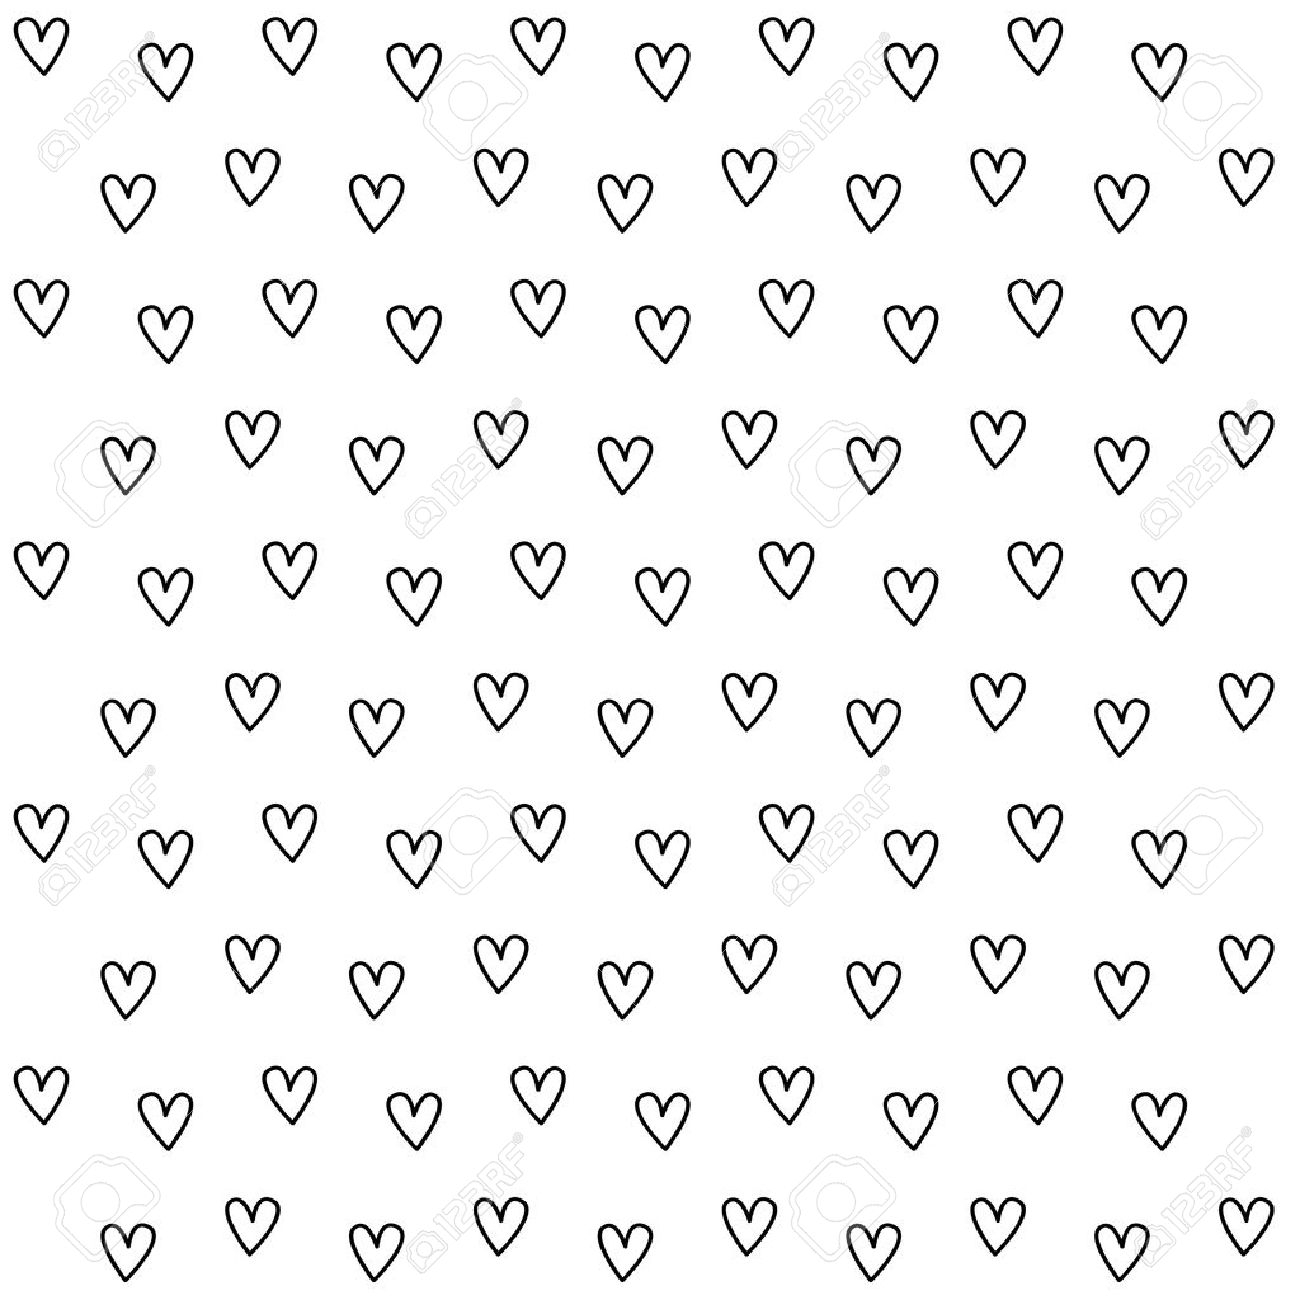 black and white heart pattern background royalty free cliparts